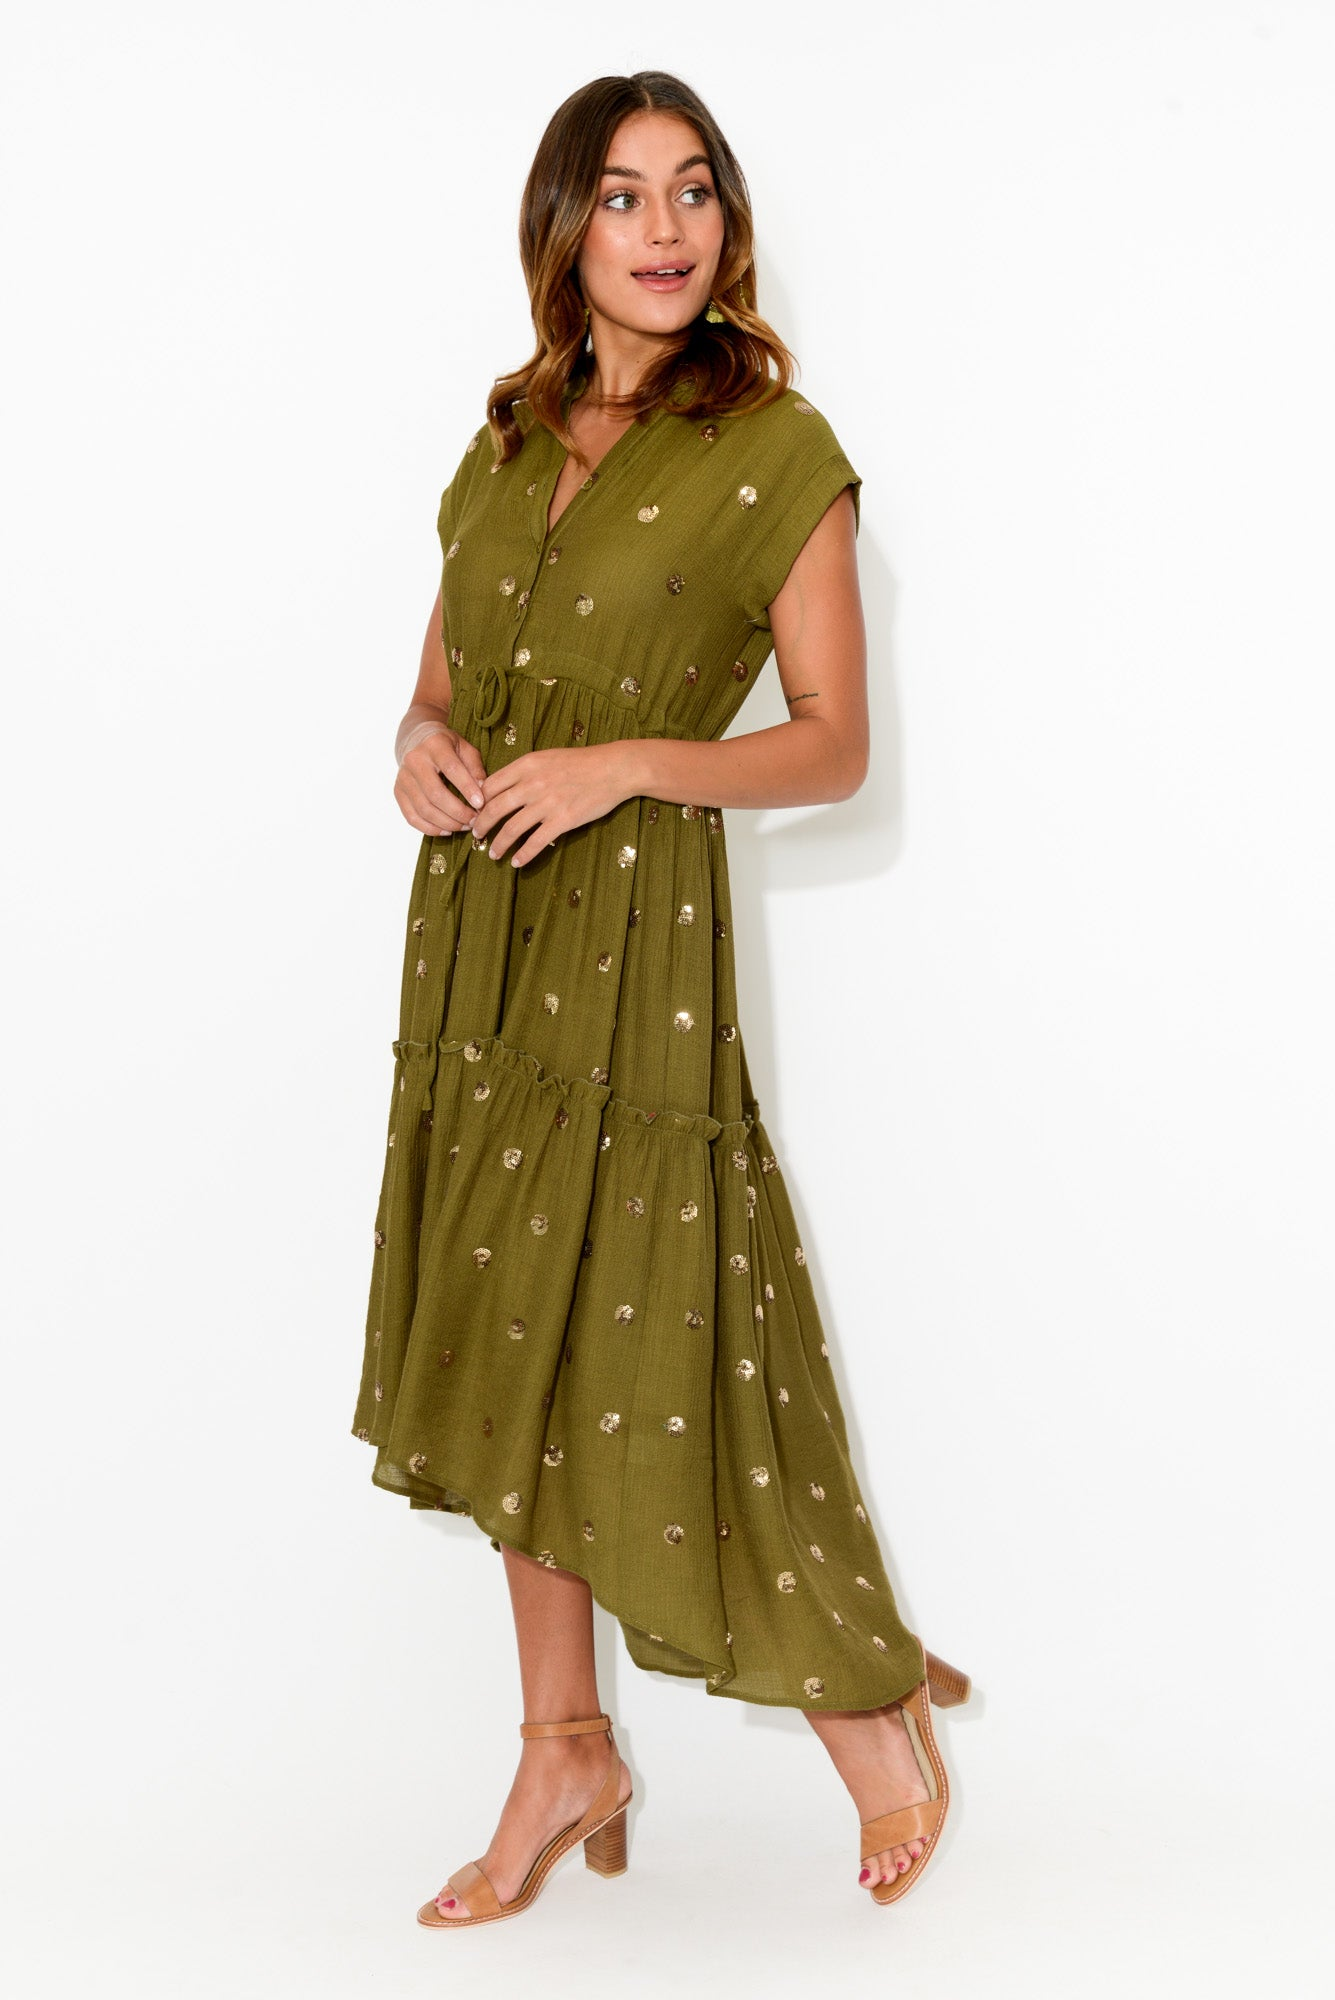 Rotta Khaki Sequin Dress